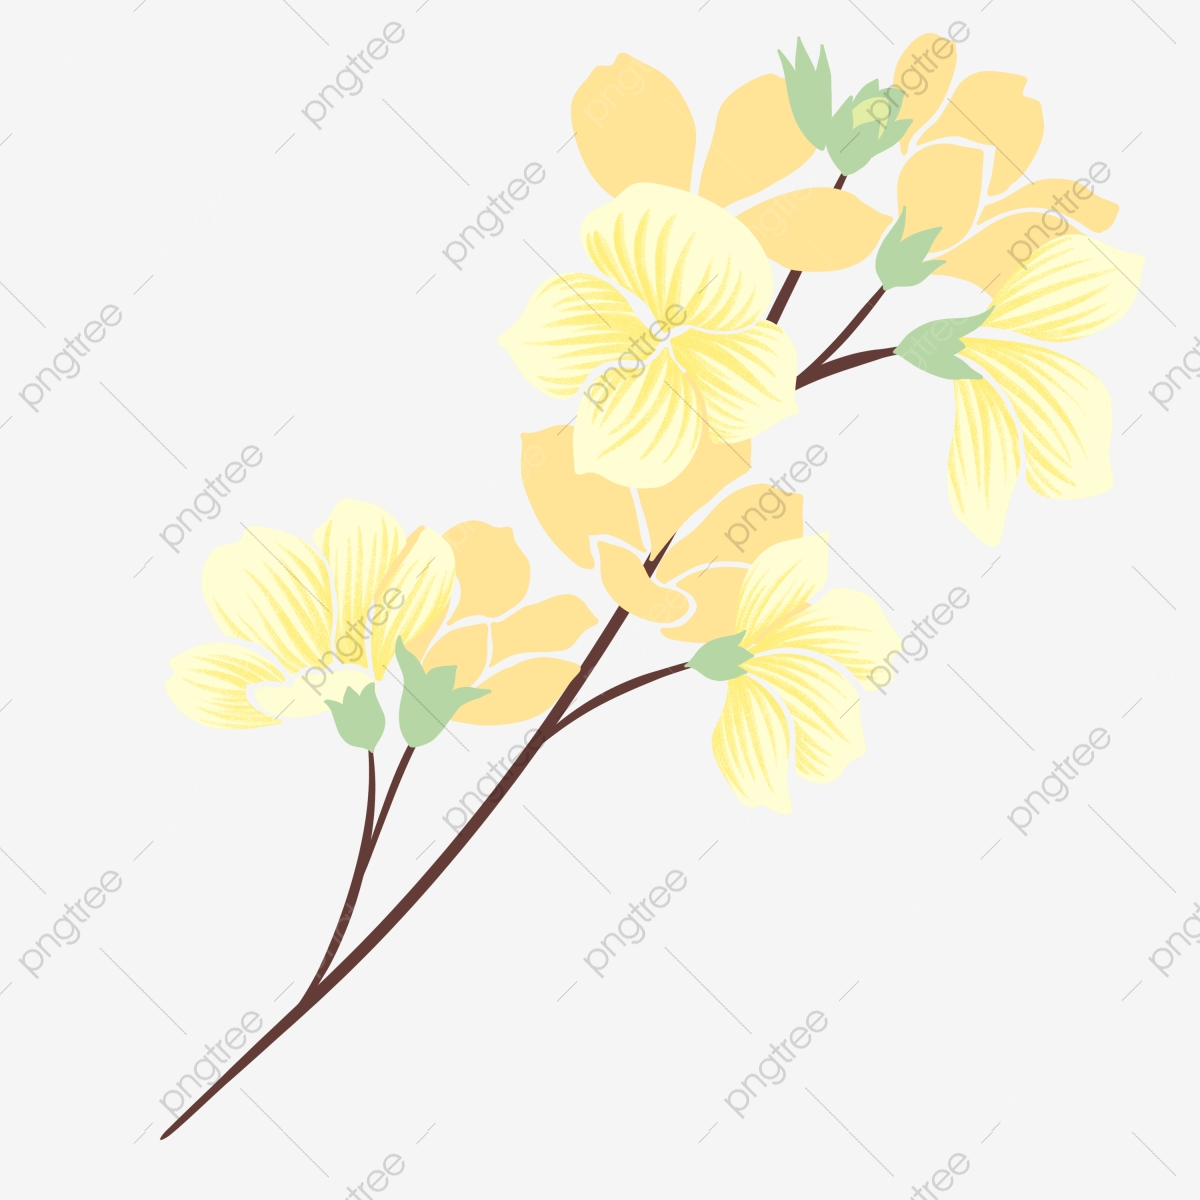 Spring Yellow Flowers Flowering Branches Illustration Spring